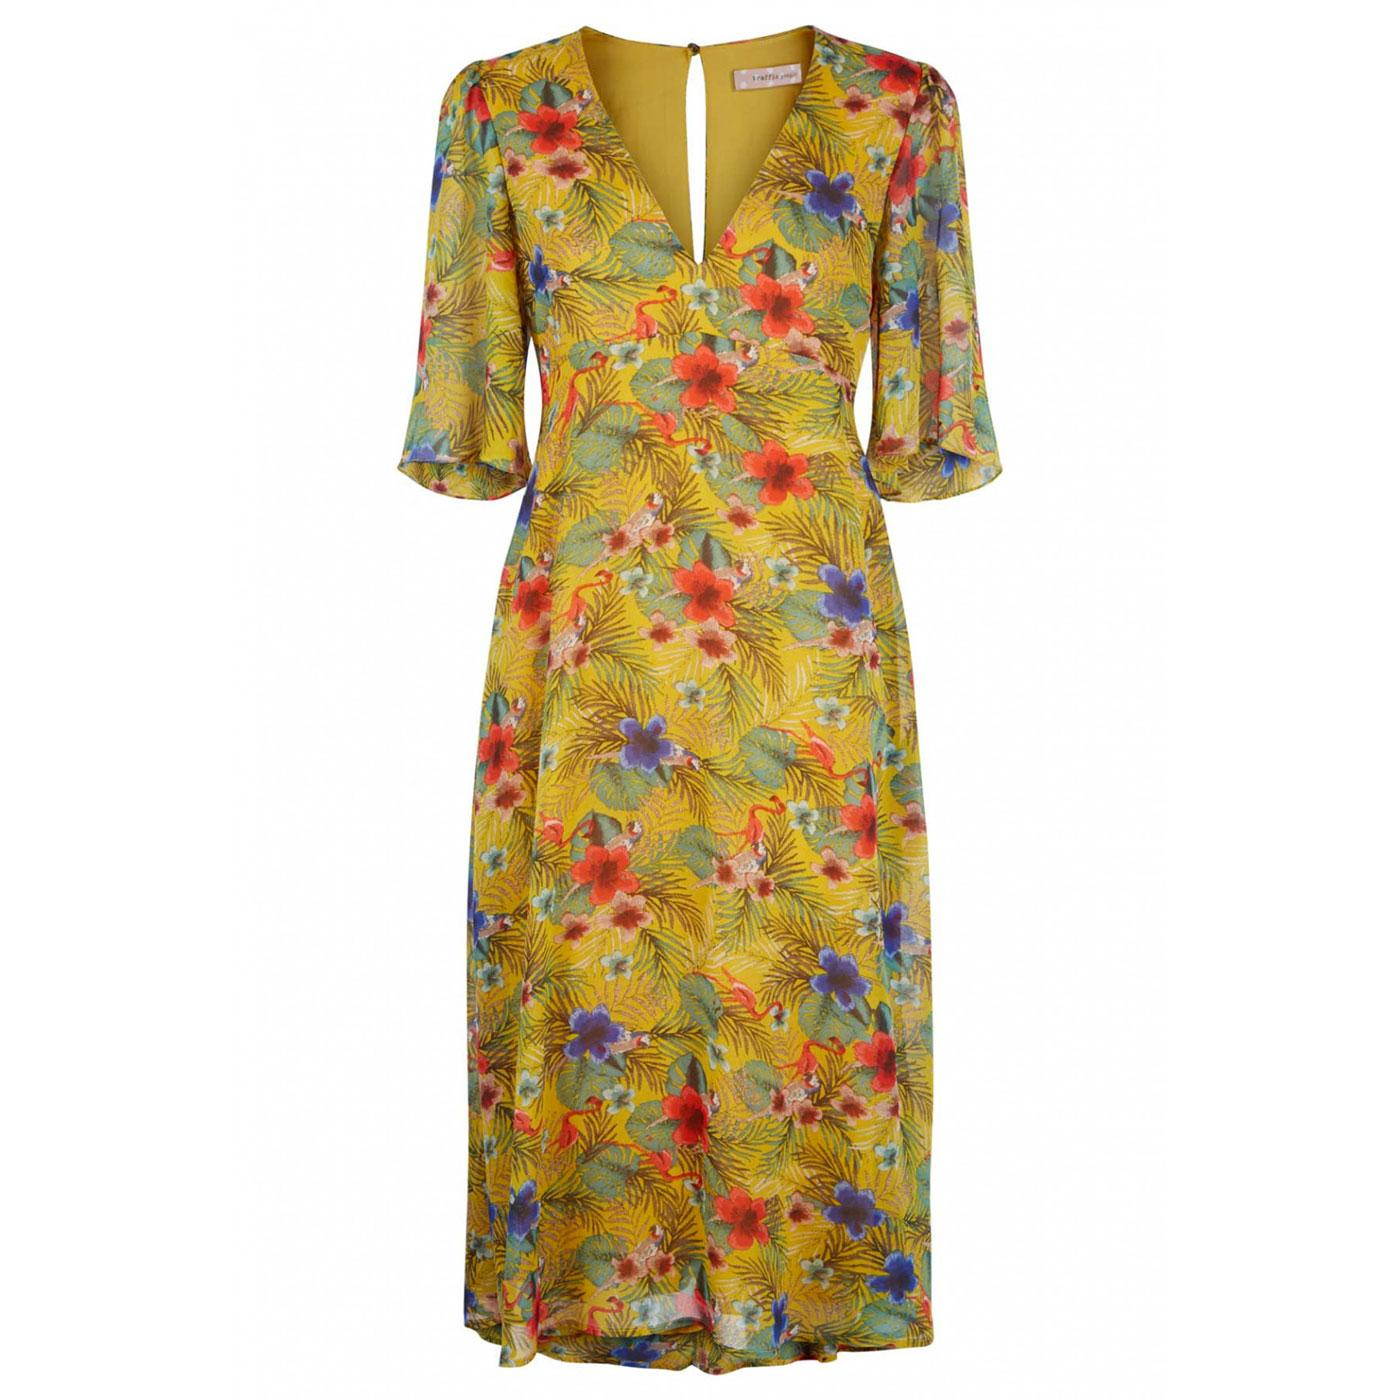 Blithe TRAFFIC PEOPLE Retro 60s Summer Dress